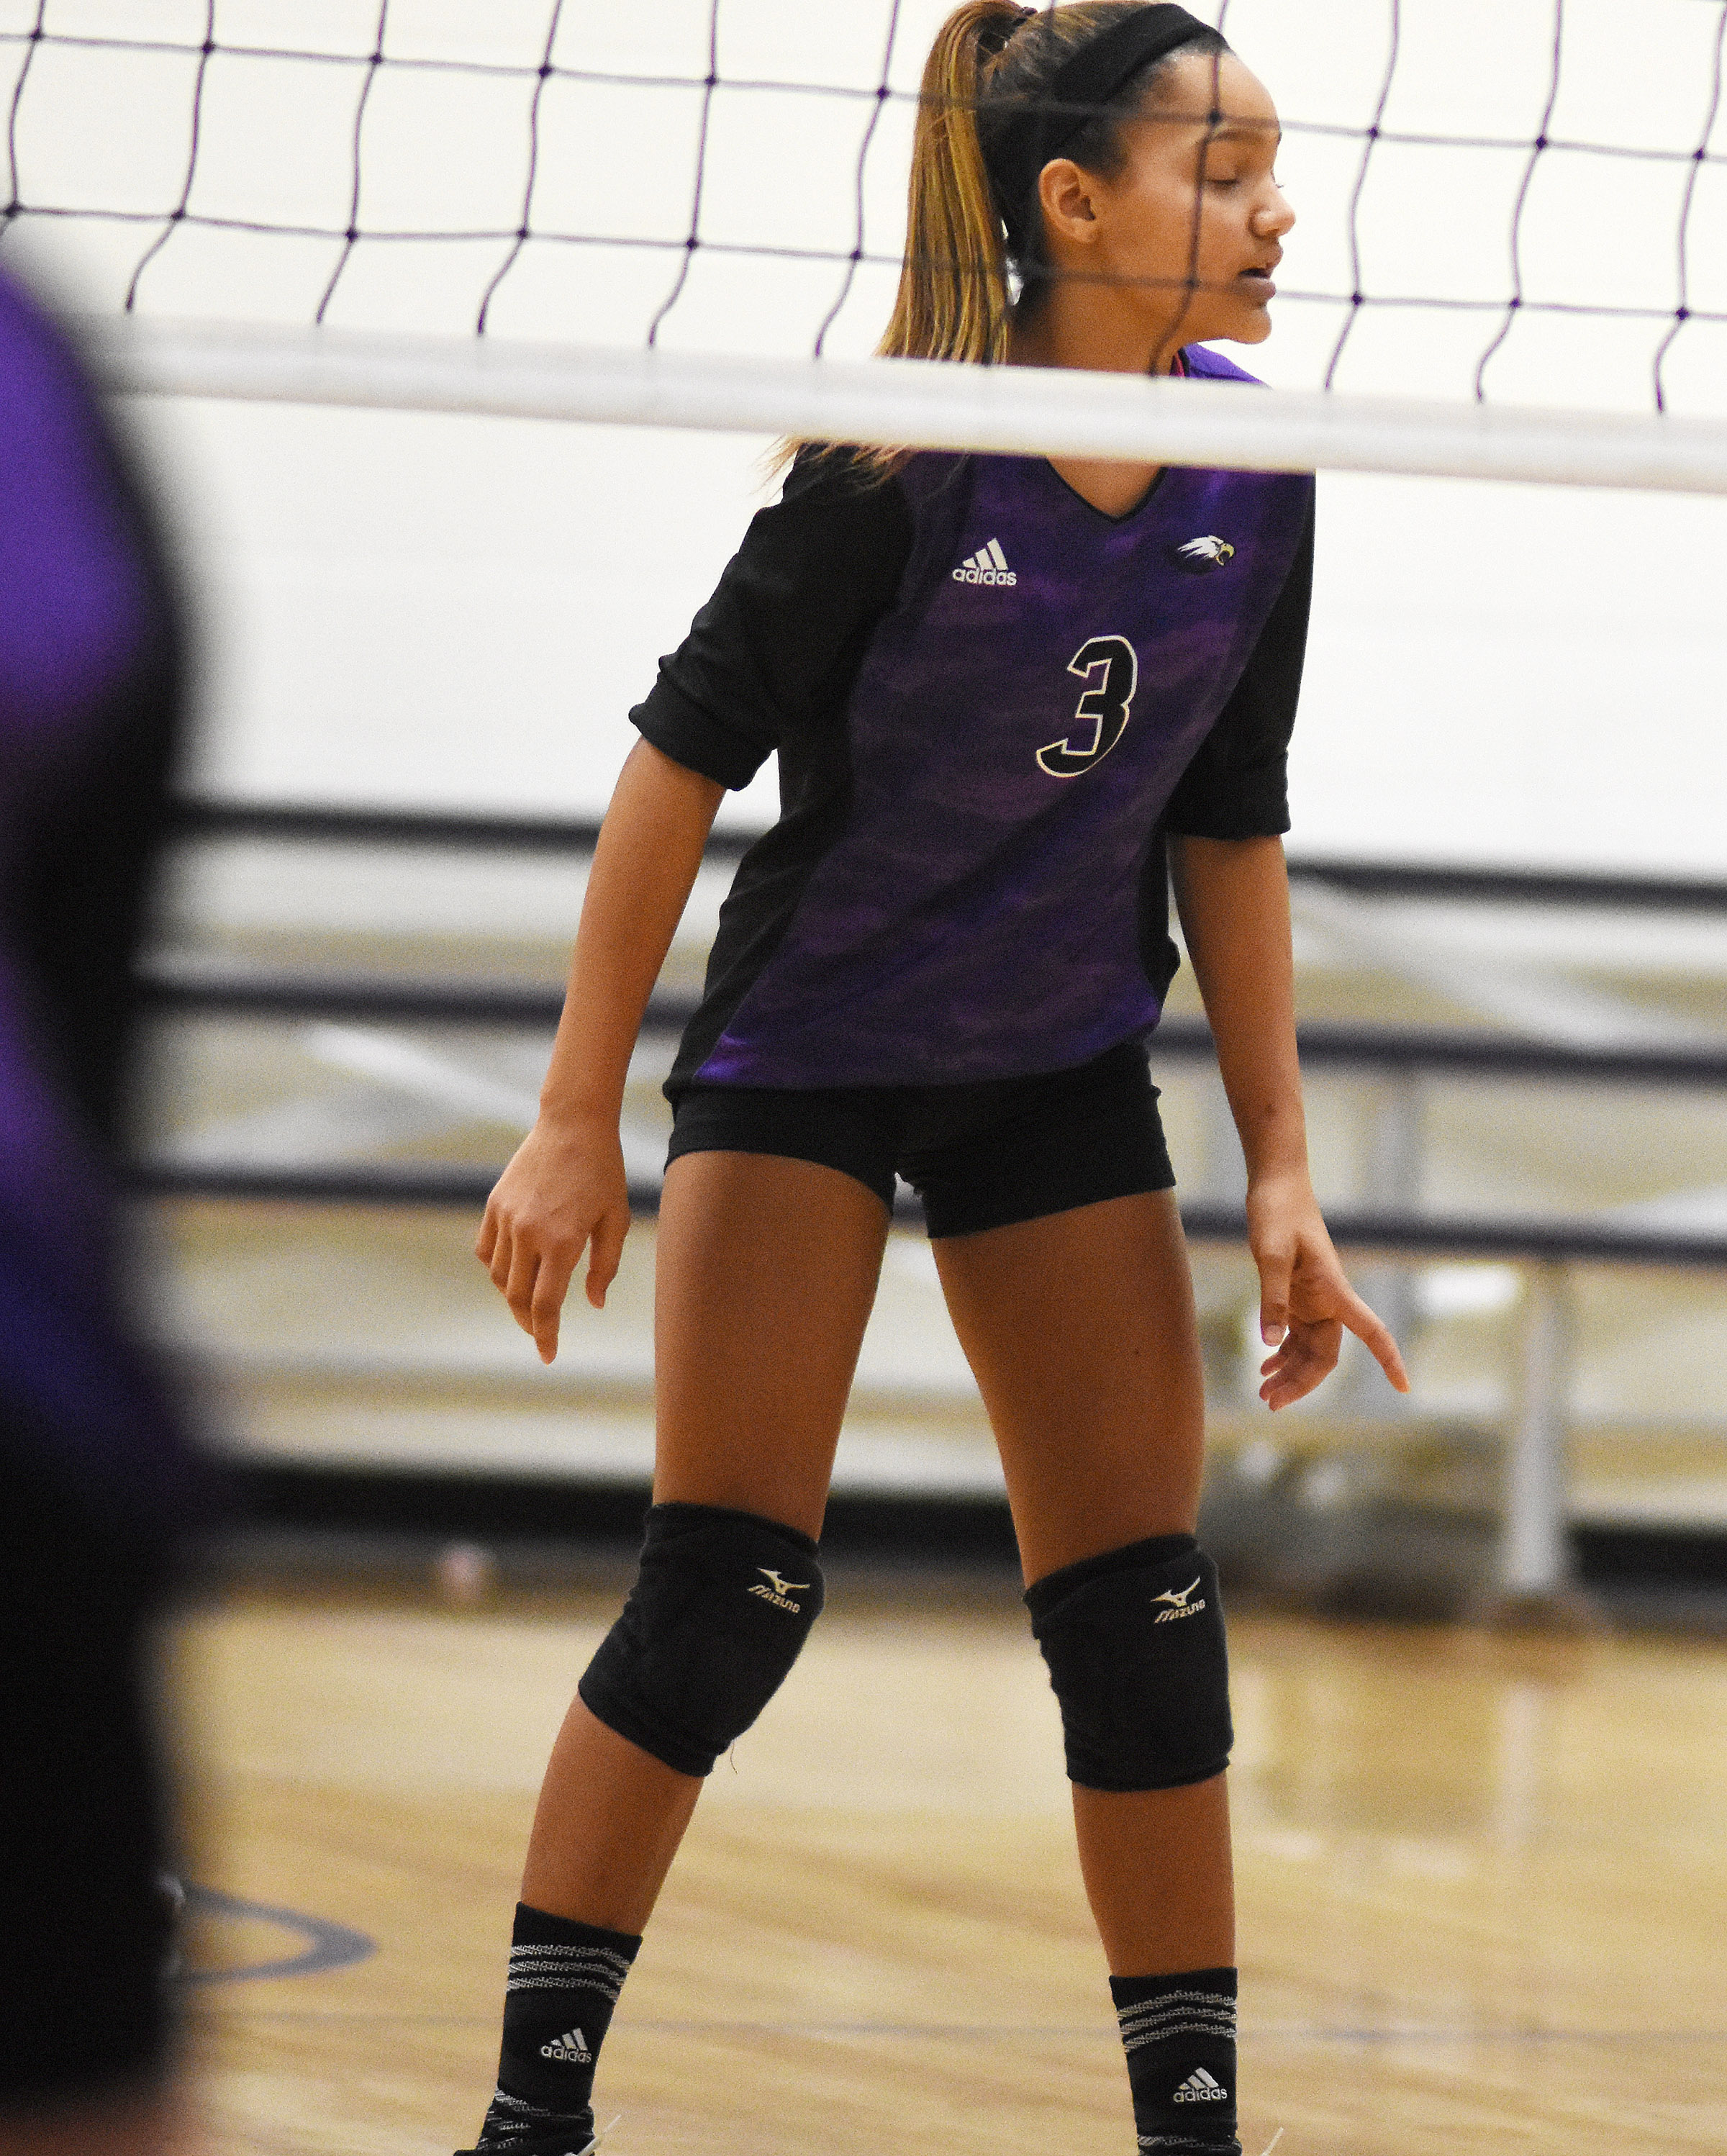 CMS eighth-grader Alexis Thomas watches a serve.